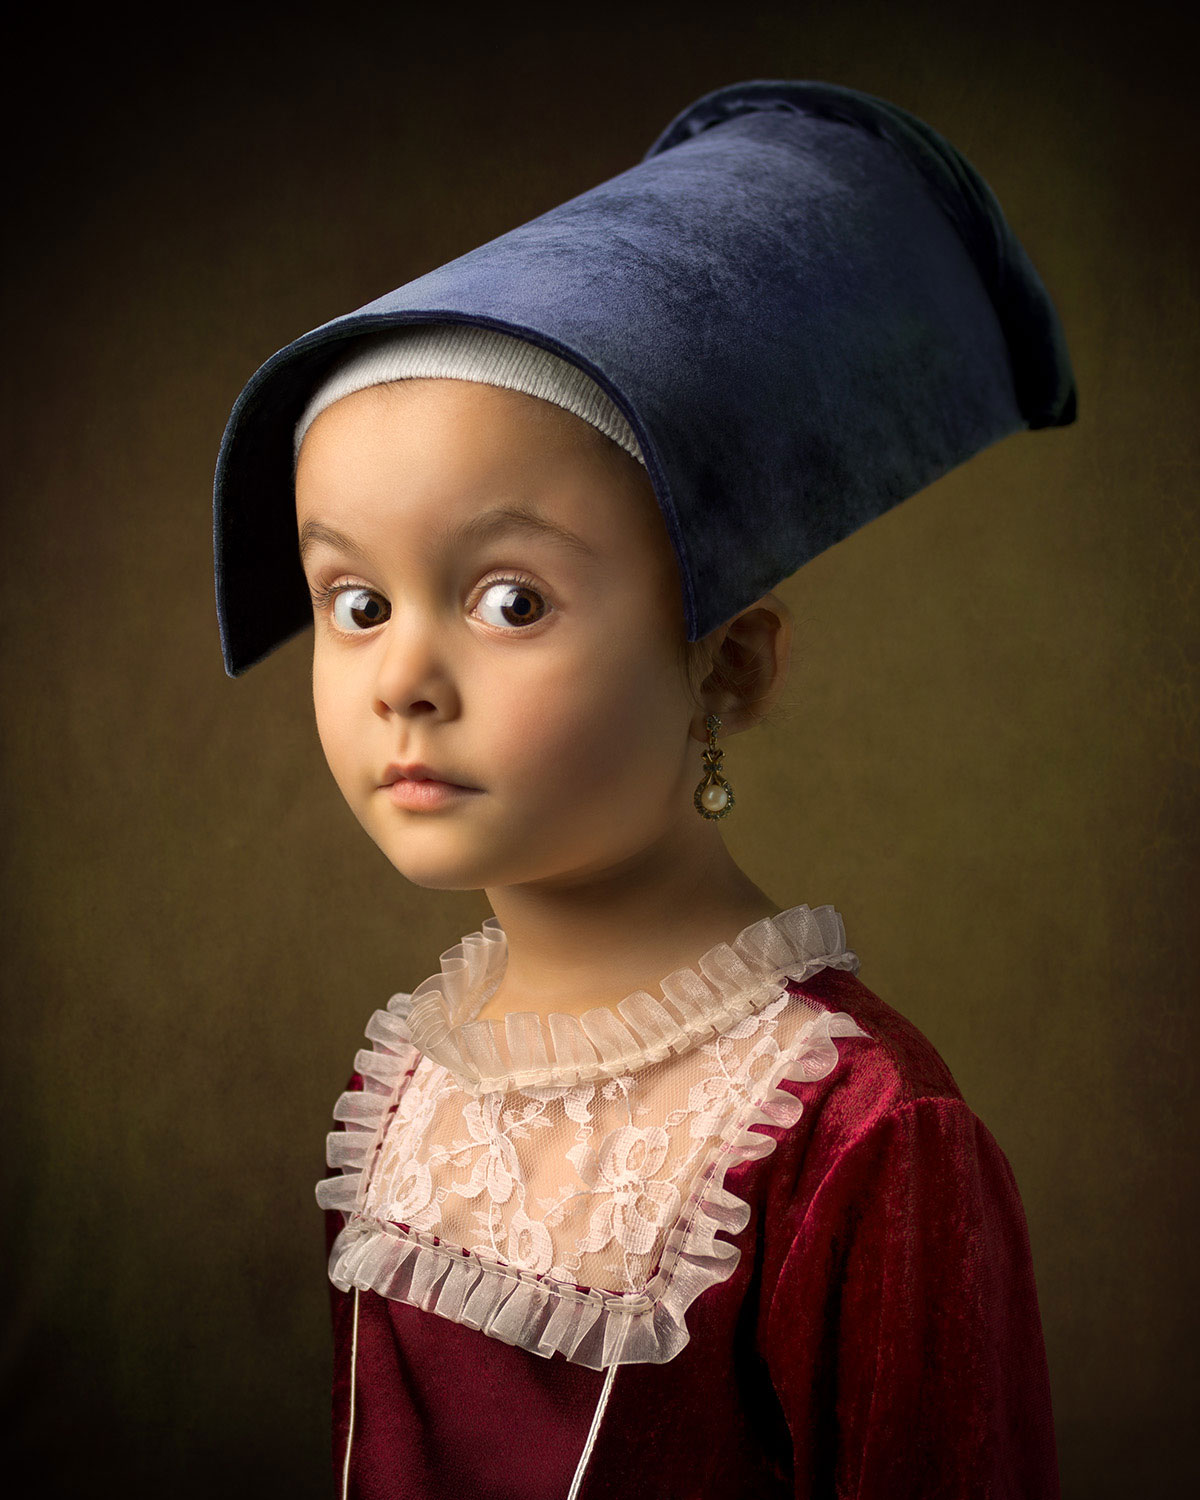 Bill Gekas' Portraits of His Daughter in the Style of Dutch Master Paintings.